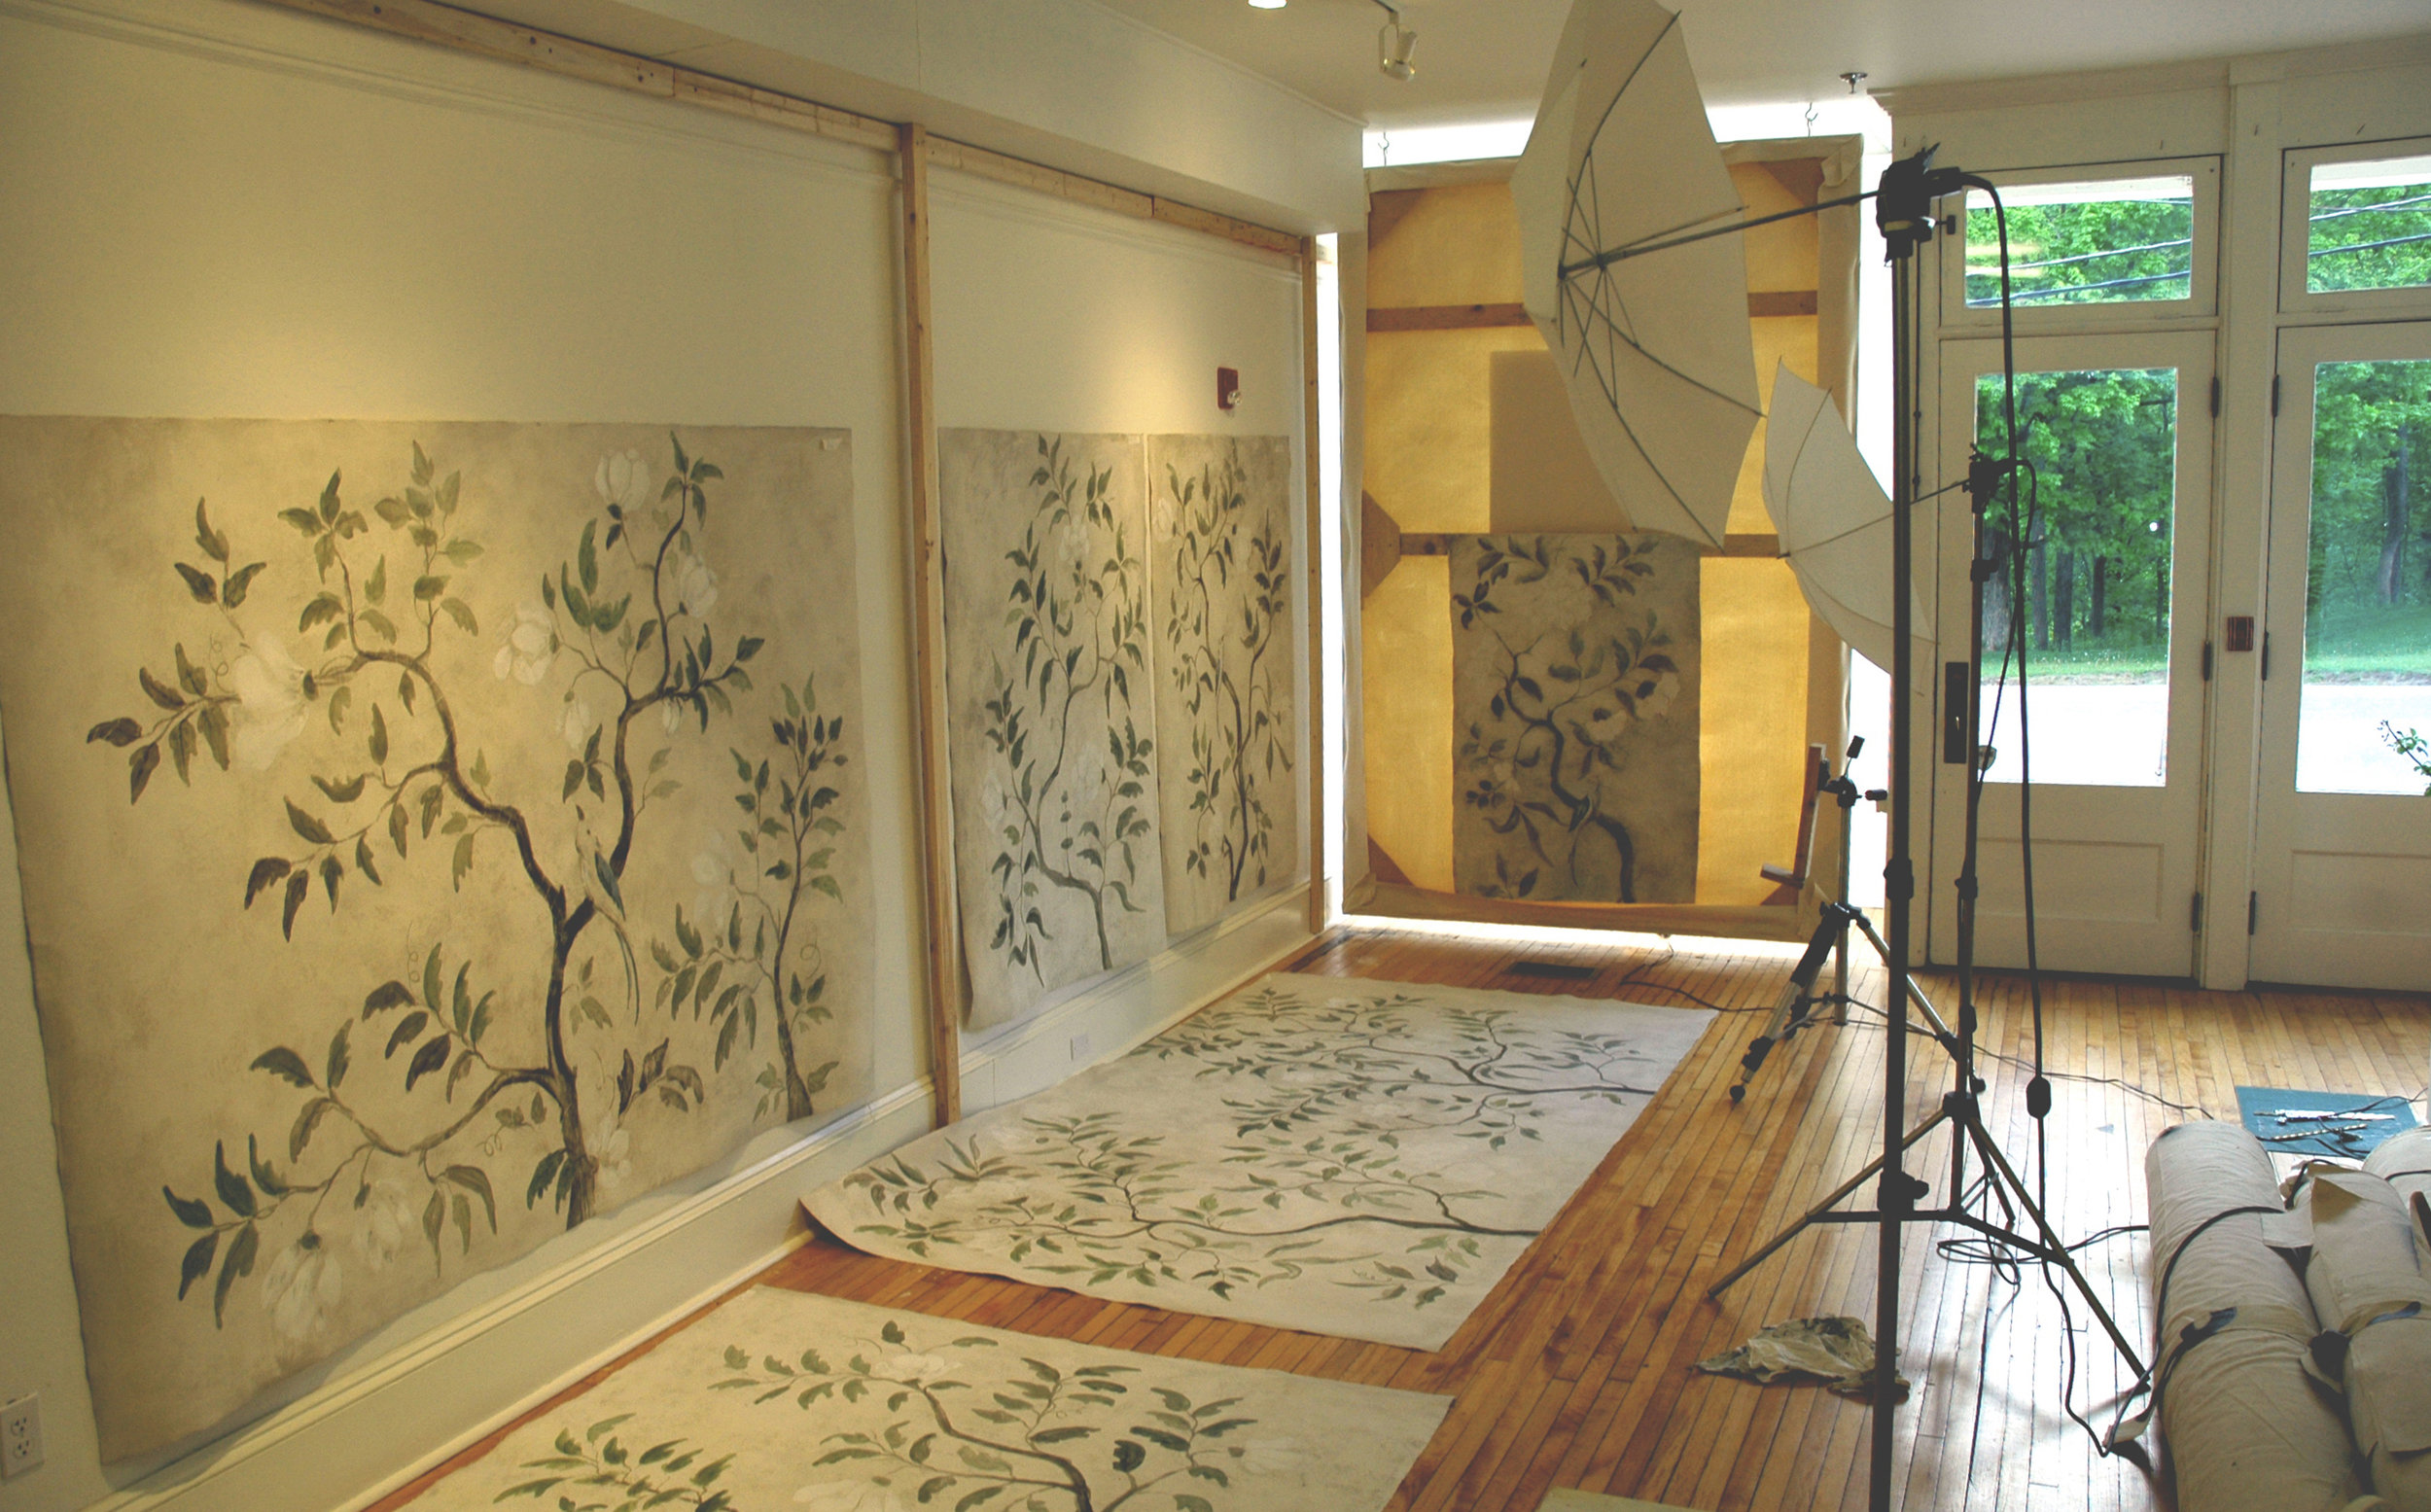 TREE OF LIFE MURAL IN STUDIO